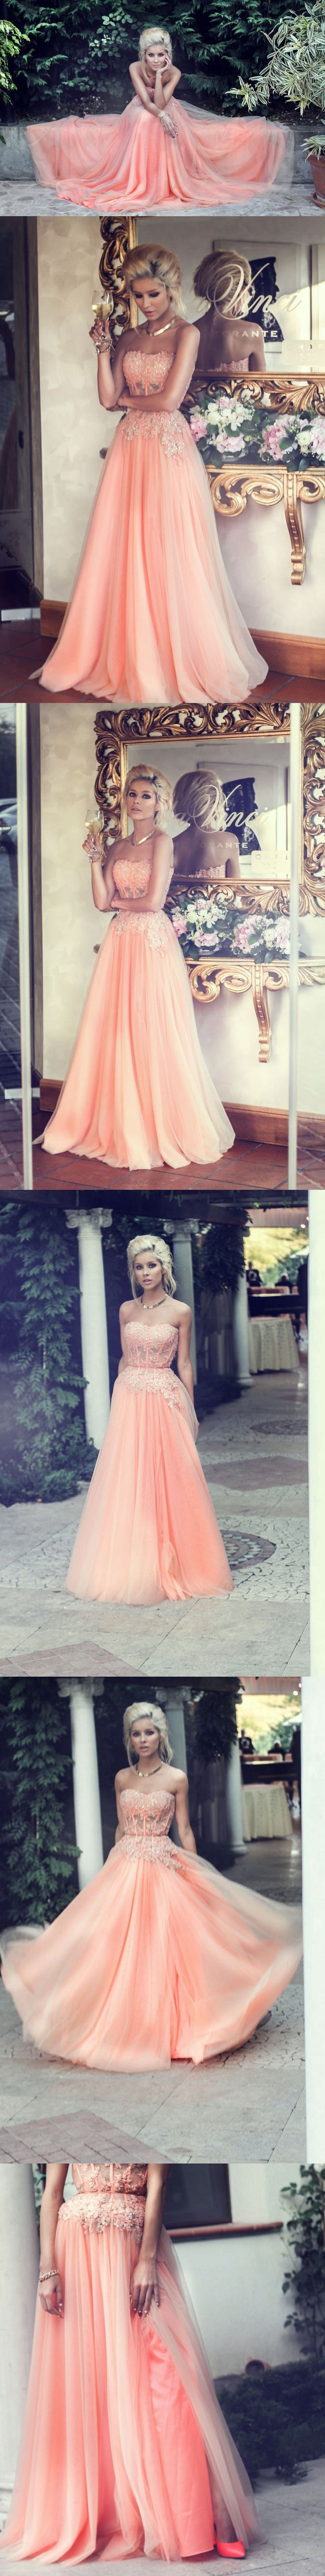 New fashion girls party dresses beaded bodice off shoulder long prom